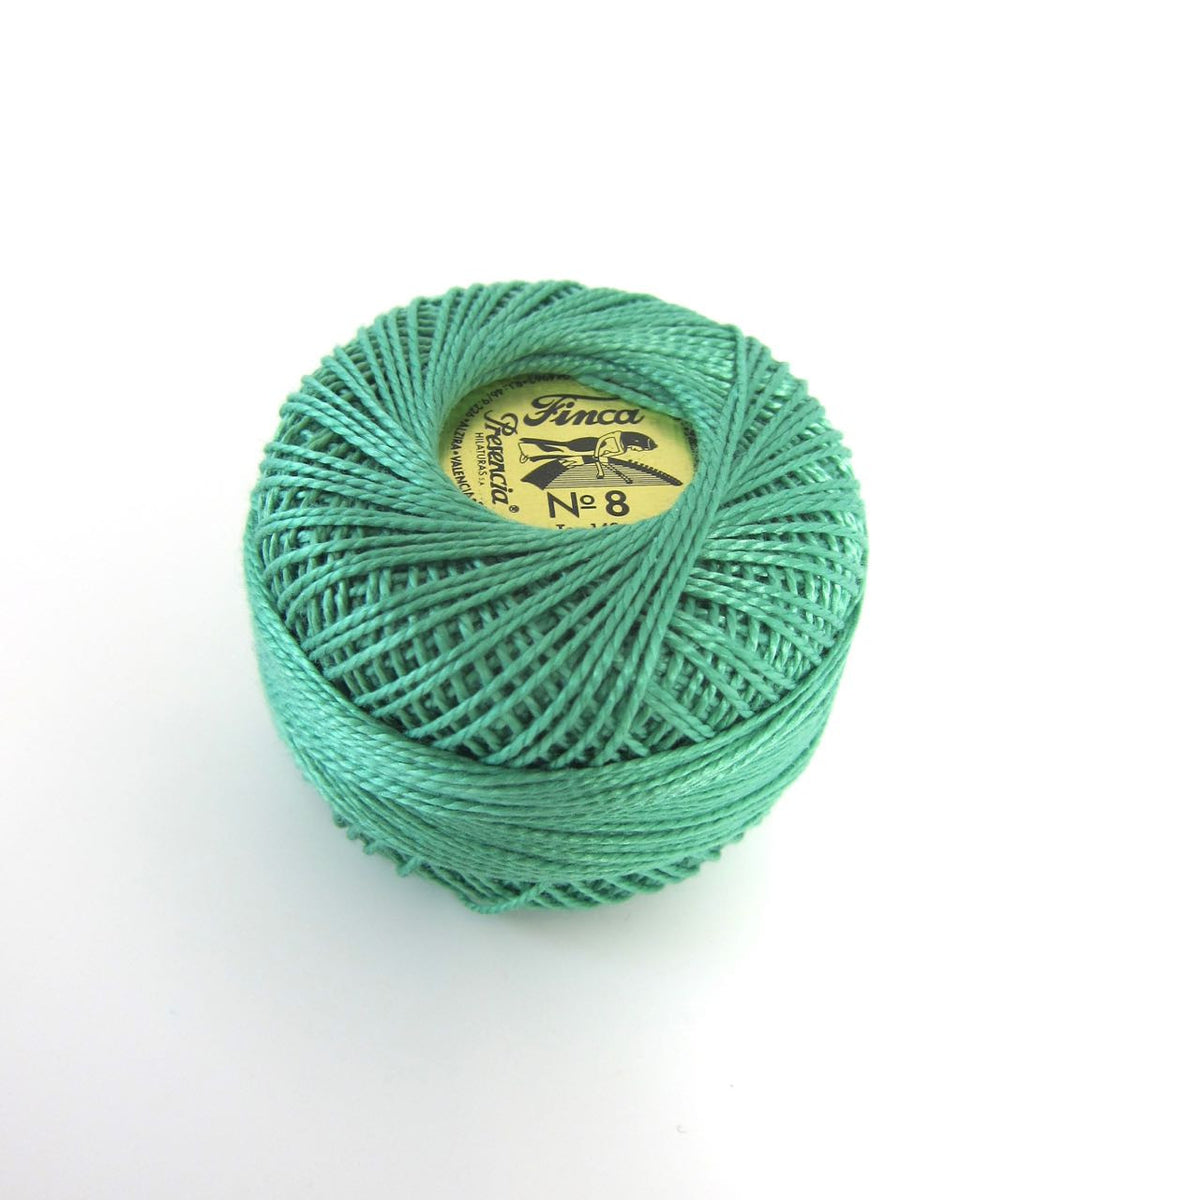 Emerald Finca Perle Cotton Thread (4350) Perle Cotton - Snuggly Monkey